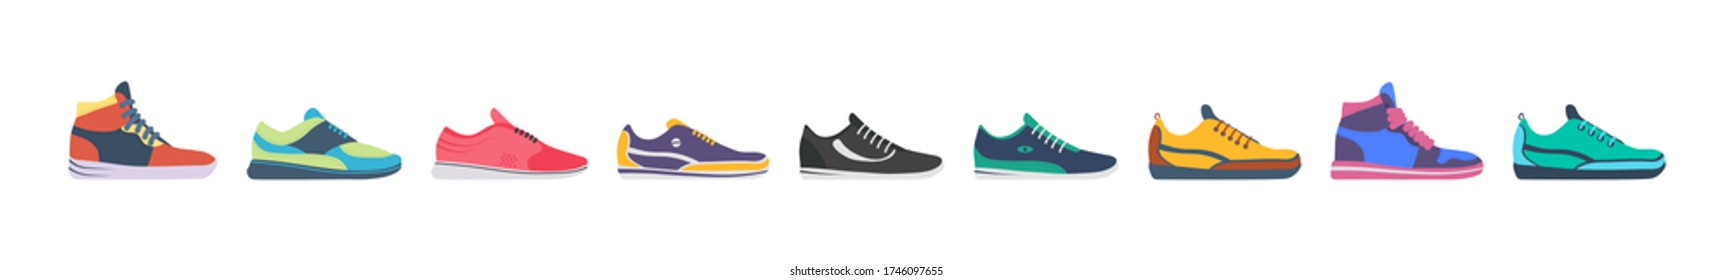 Athletic sneakers, fitness sport shop footwear collection on white background. Sneaker shoe. Set of sport shoes for training, running. Vector illustration in flat design, eps 10.